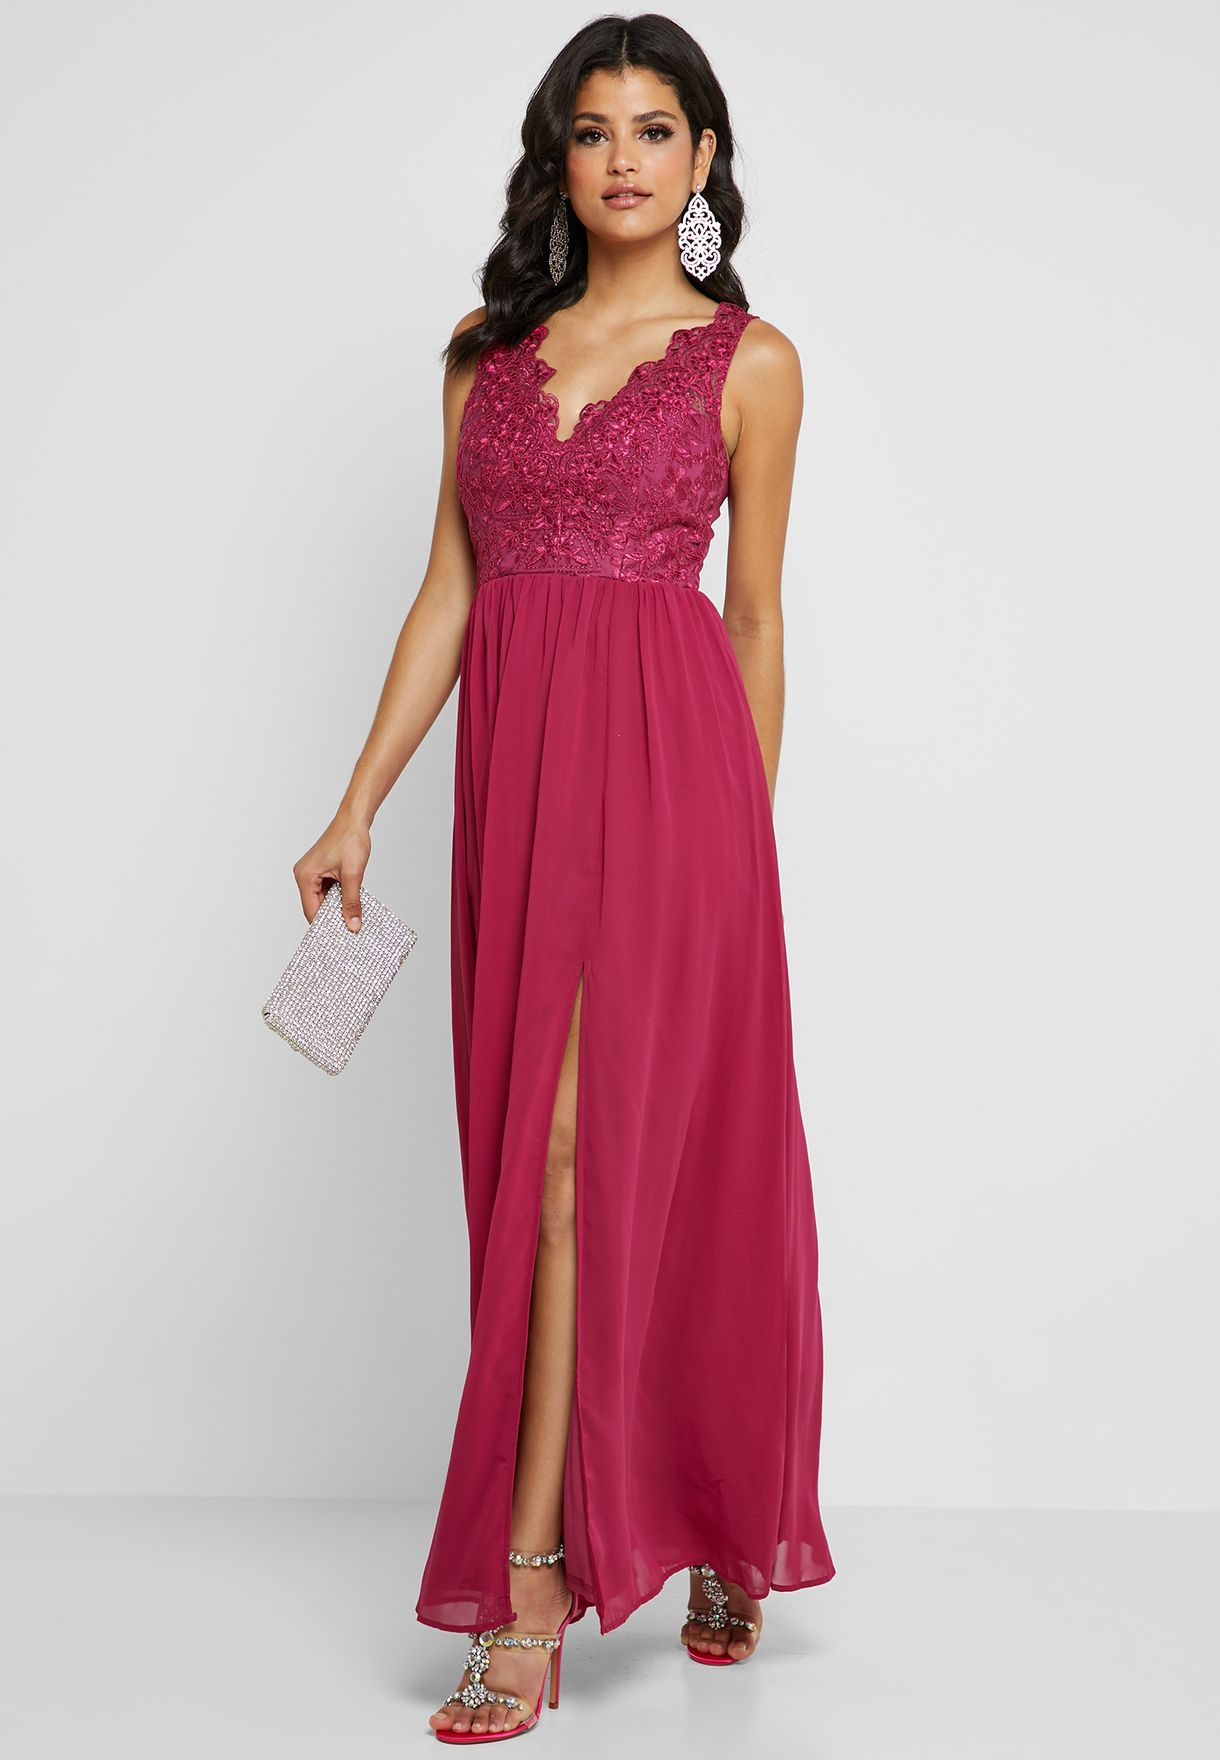 Scallop Lace Front Slit Dress